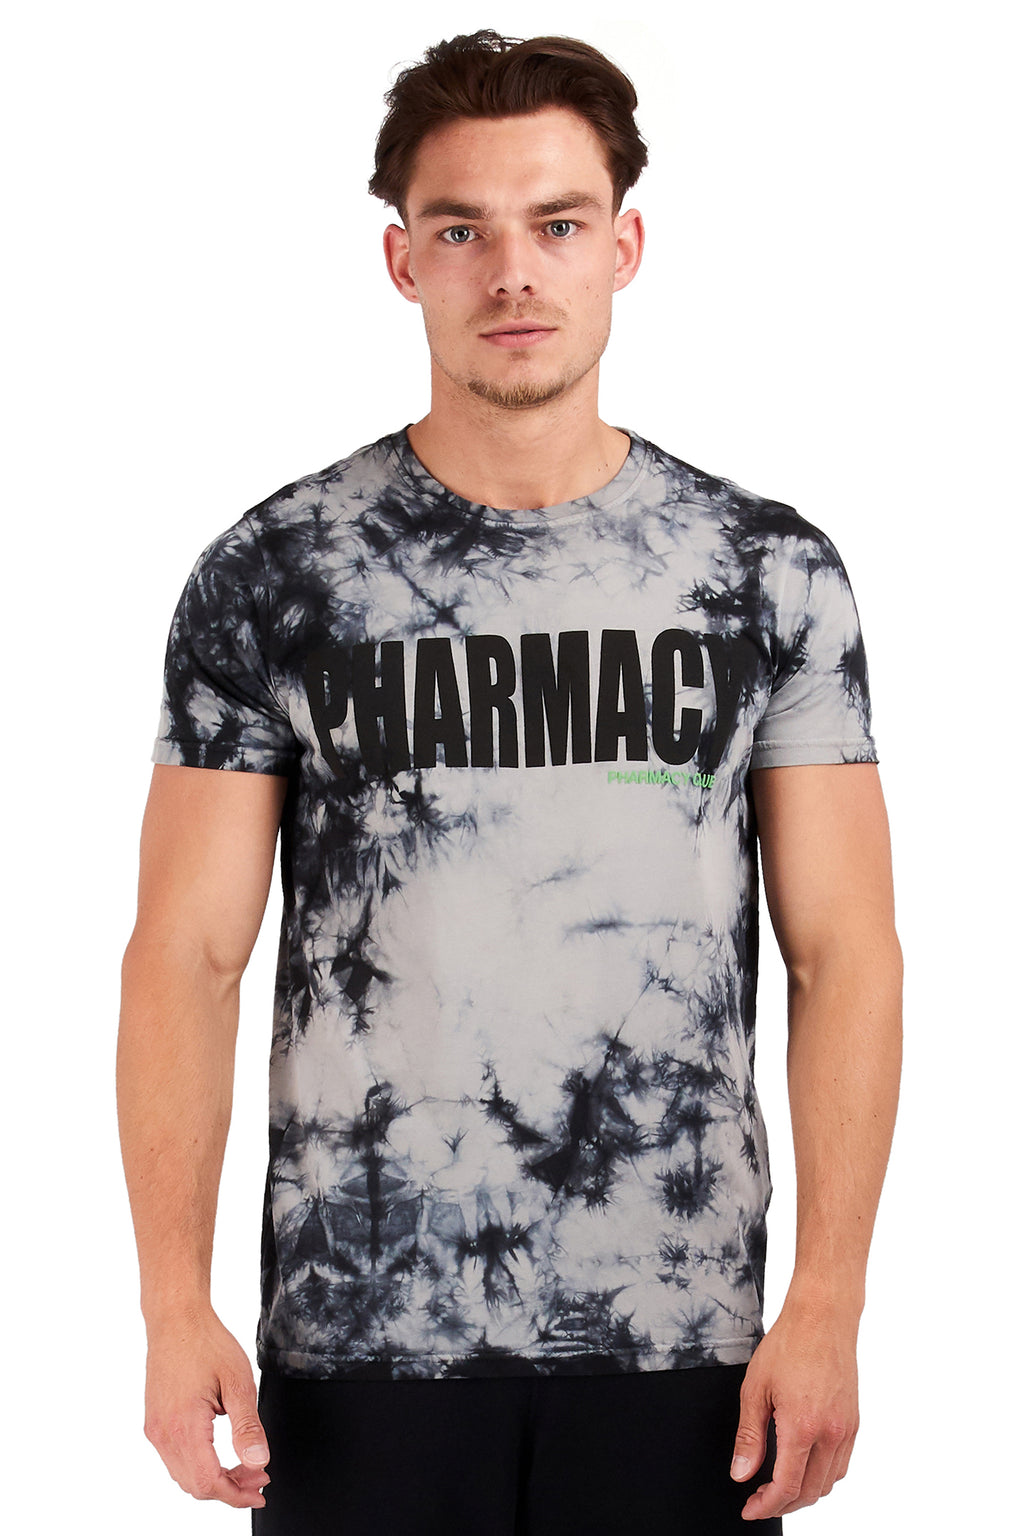 <b>PC118</b><br>T-shirt<br>Tie-dye allover with signature print<b